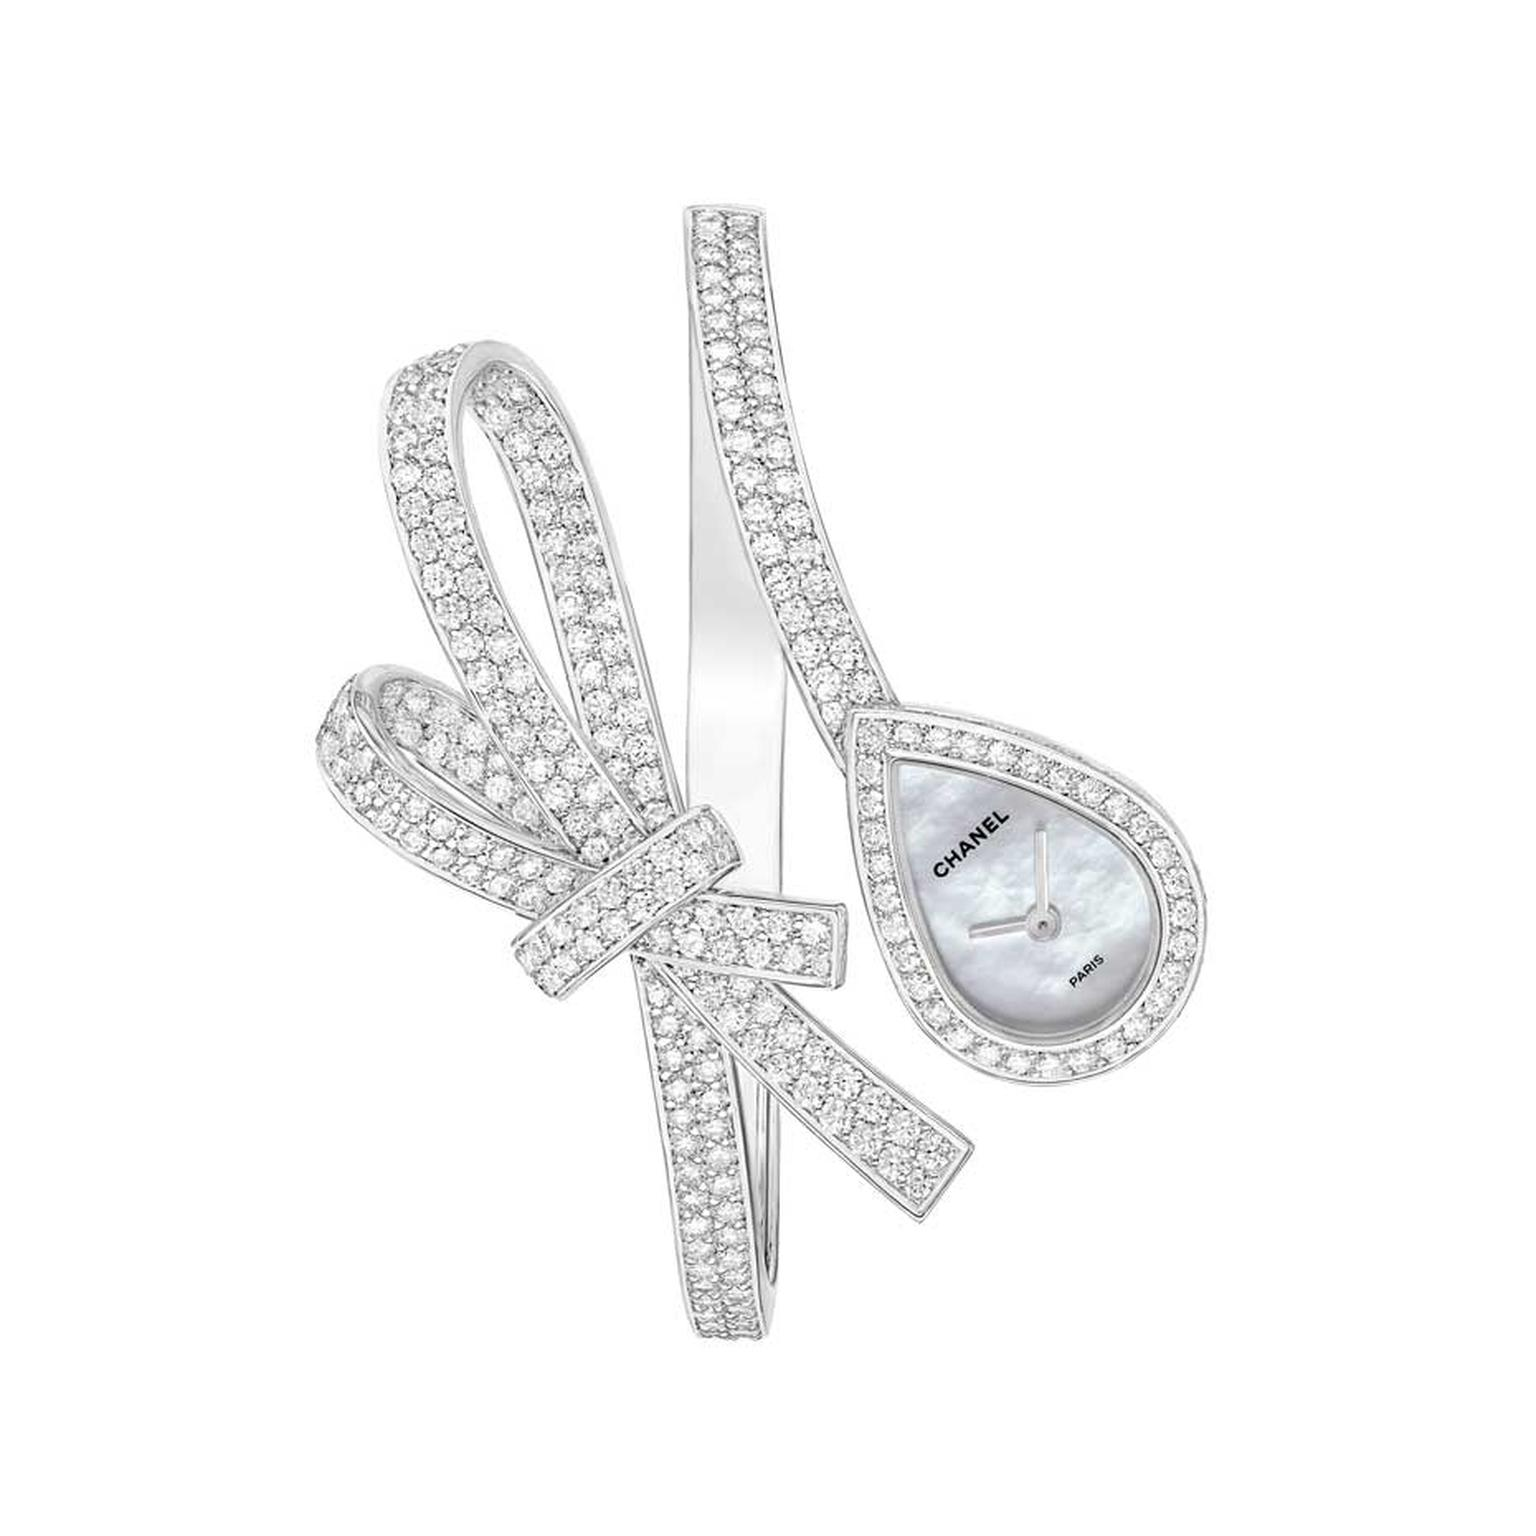 Chanel's diamond watch from the Ruban collection, crafted in white gold and set with 292 brilliant-cut diamonds, features a drop-shaped mother-of-pearl dial attached to one end of a diamond ribbon.